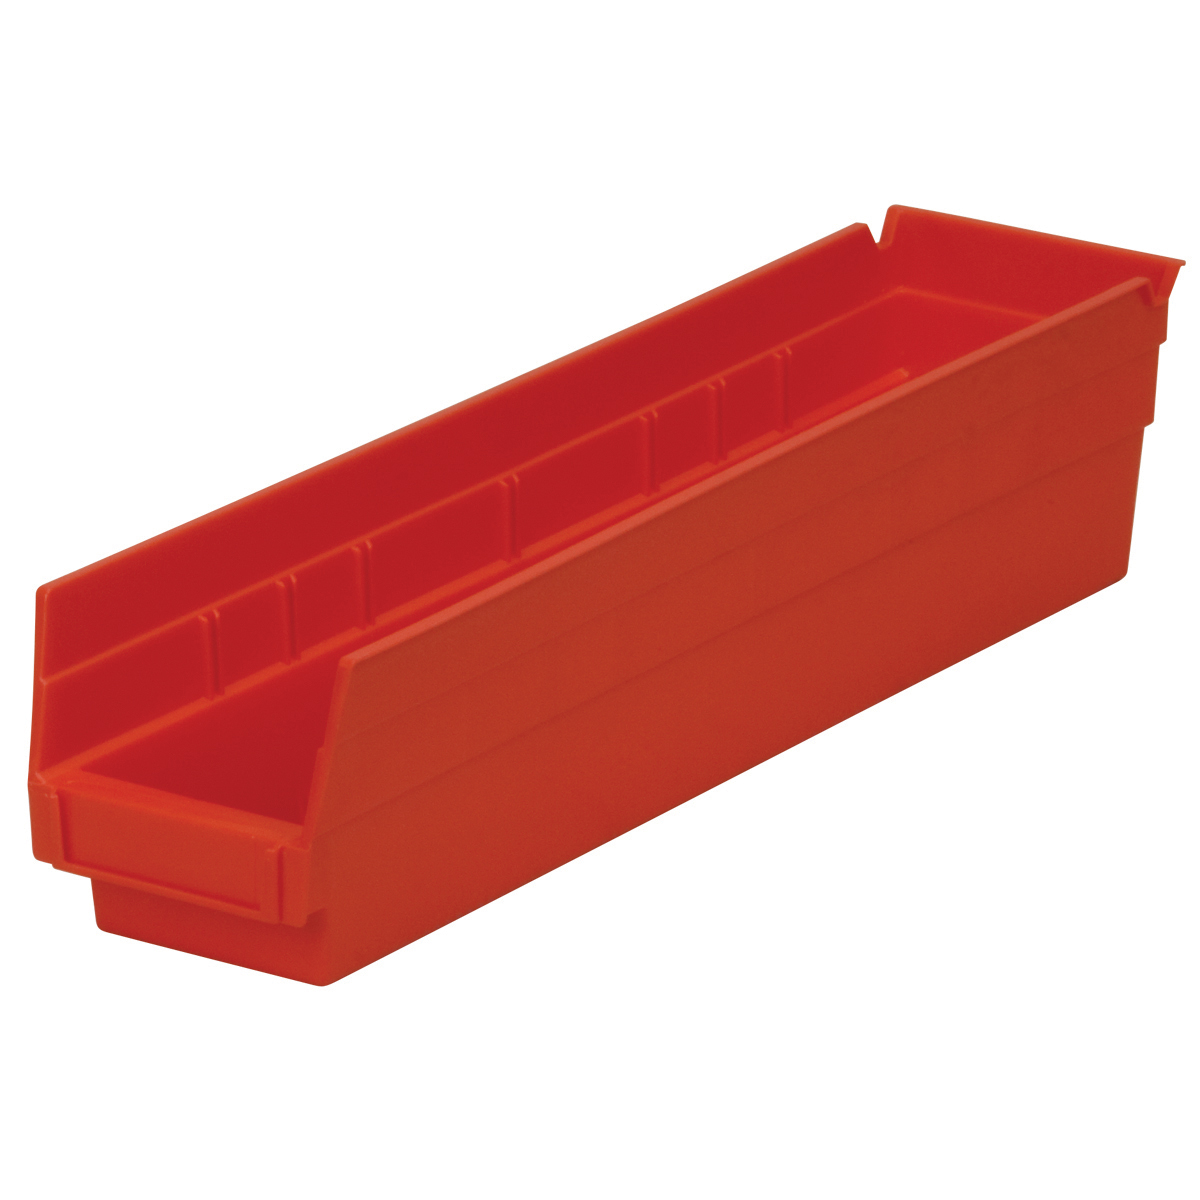 Shelf Bin 17-7/8 x 4-1/8 x 4, Red (30128RED).  This item sold in carton quantities of 12.